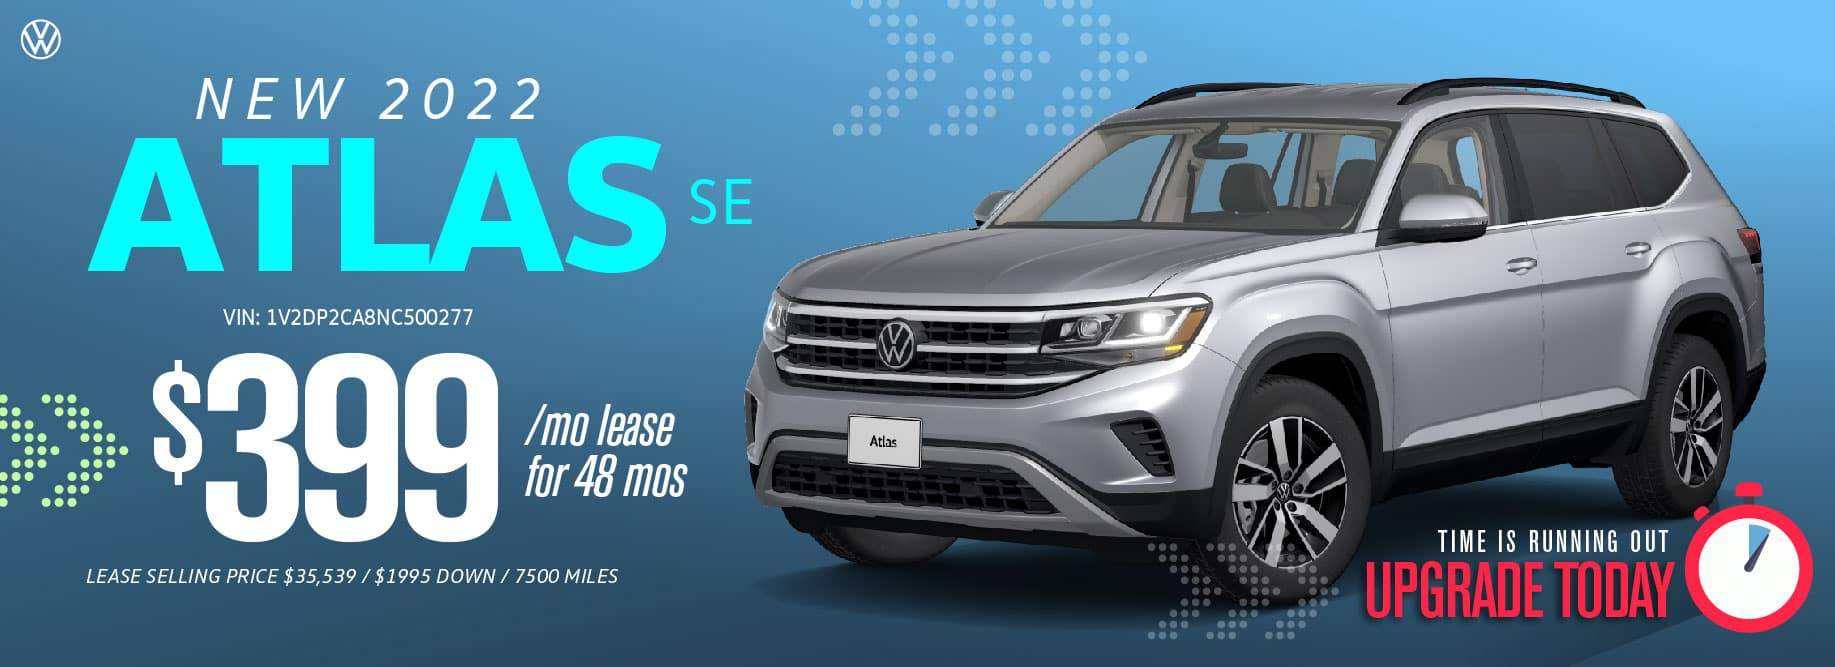 Lease the 2022 Atlas from $399 a month at Volkswagen Clear Lake